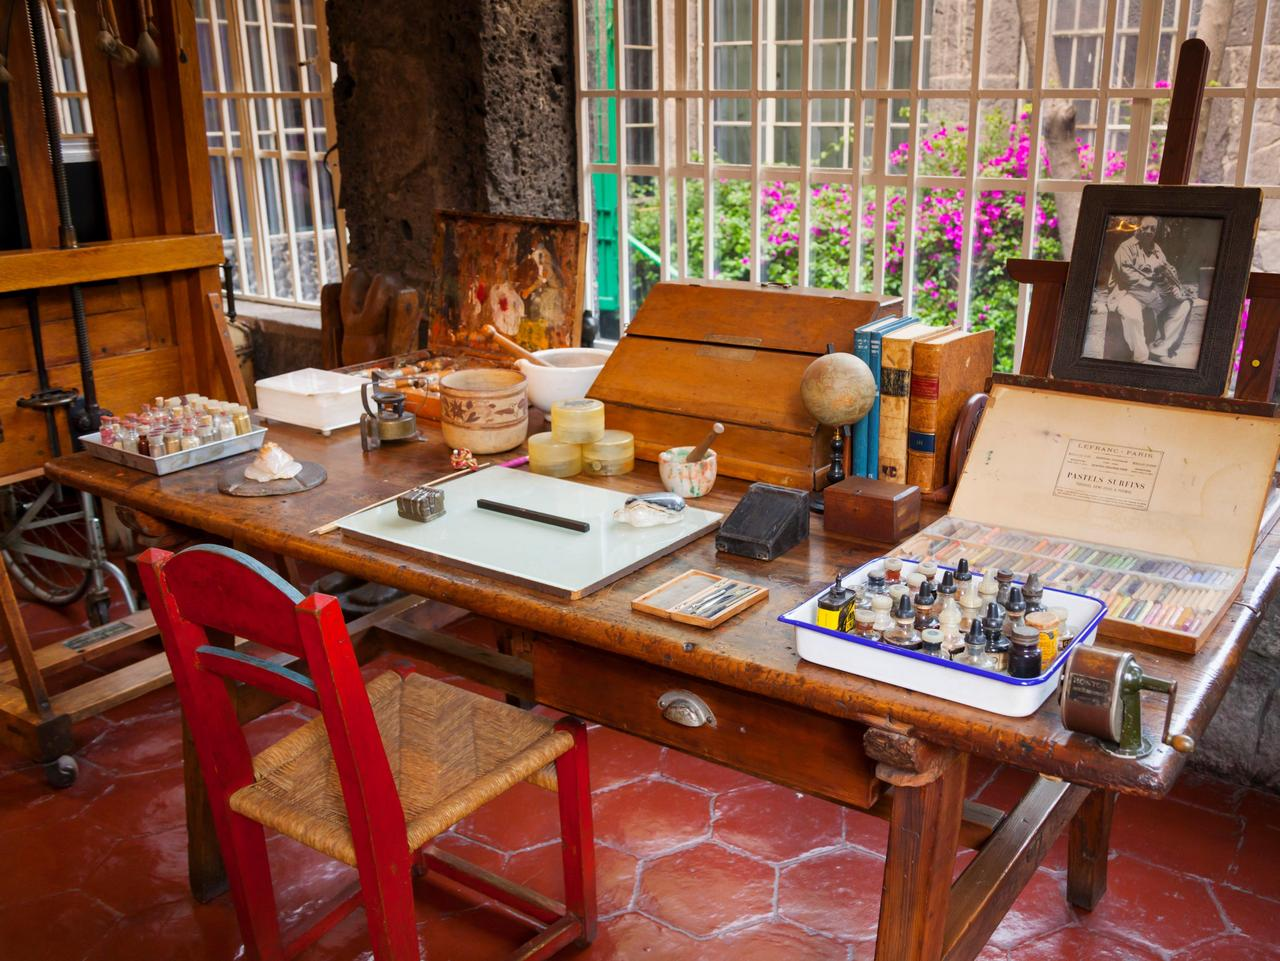 Studio, Frida Kahlo Museum (aka The Blue House, La Casa Azul), Coyoacan, Mexico City, Mexico DF, Mexico